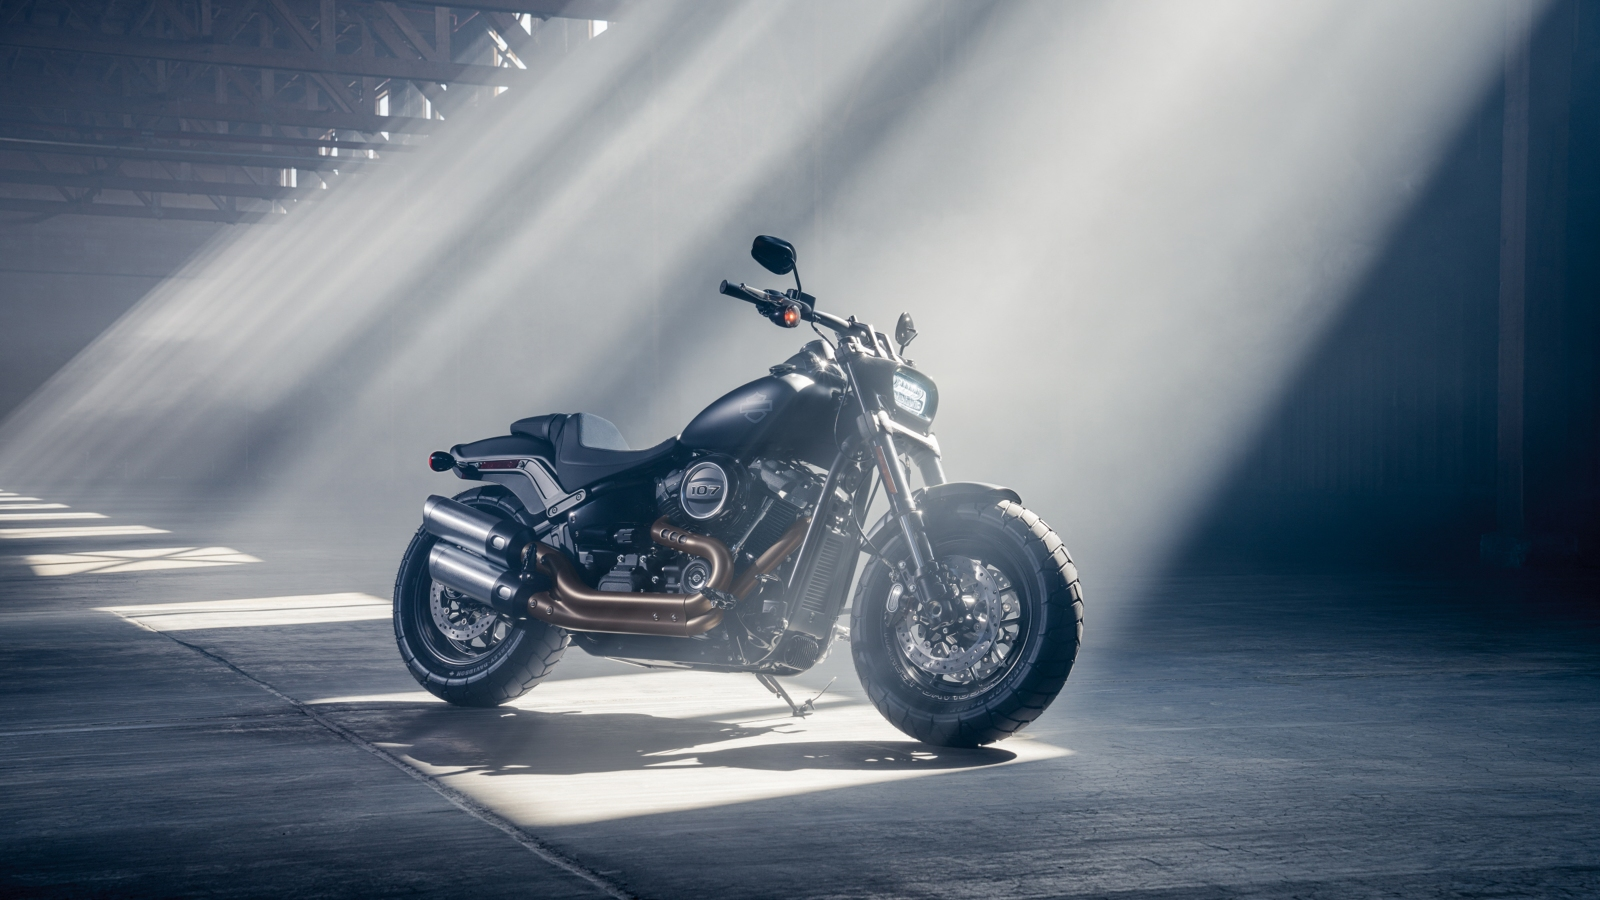 Harley-Davidson Fat Bob Review: The Muscle Car of Motorcycles